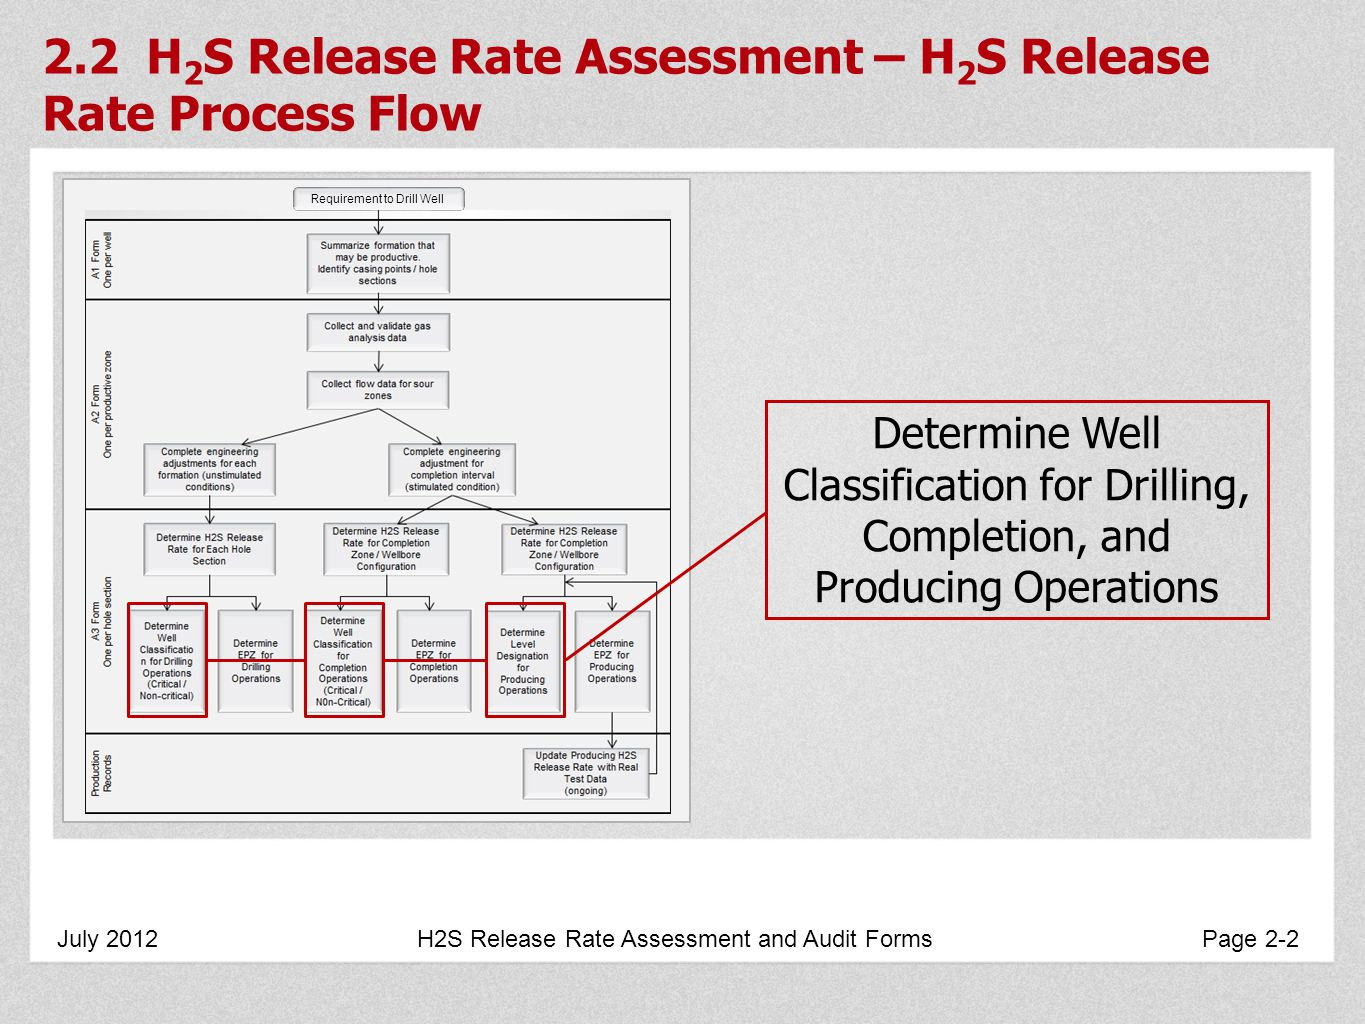 2.2 H 2 S Release Rate Assessment – H 2 S Release Rate Process Flow July 2012 H2S Release Rate Assessment and Audit Forms Page 2-2 Requirement to Drill Well Determine Well Classification for Drilling, Completion, and Producing Operations